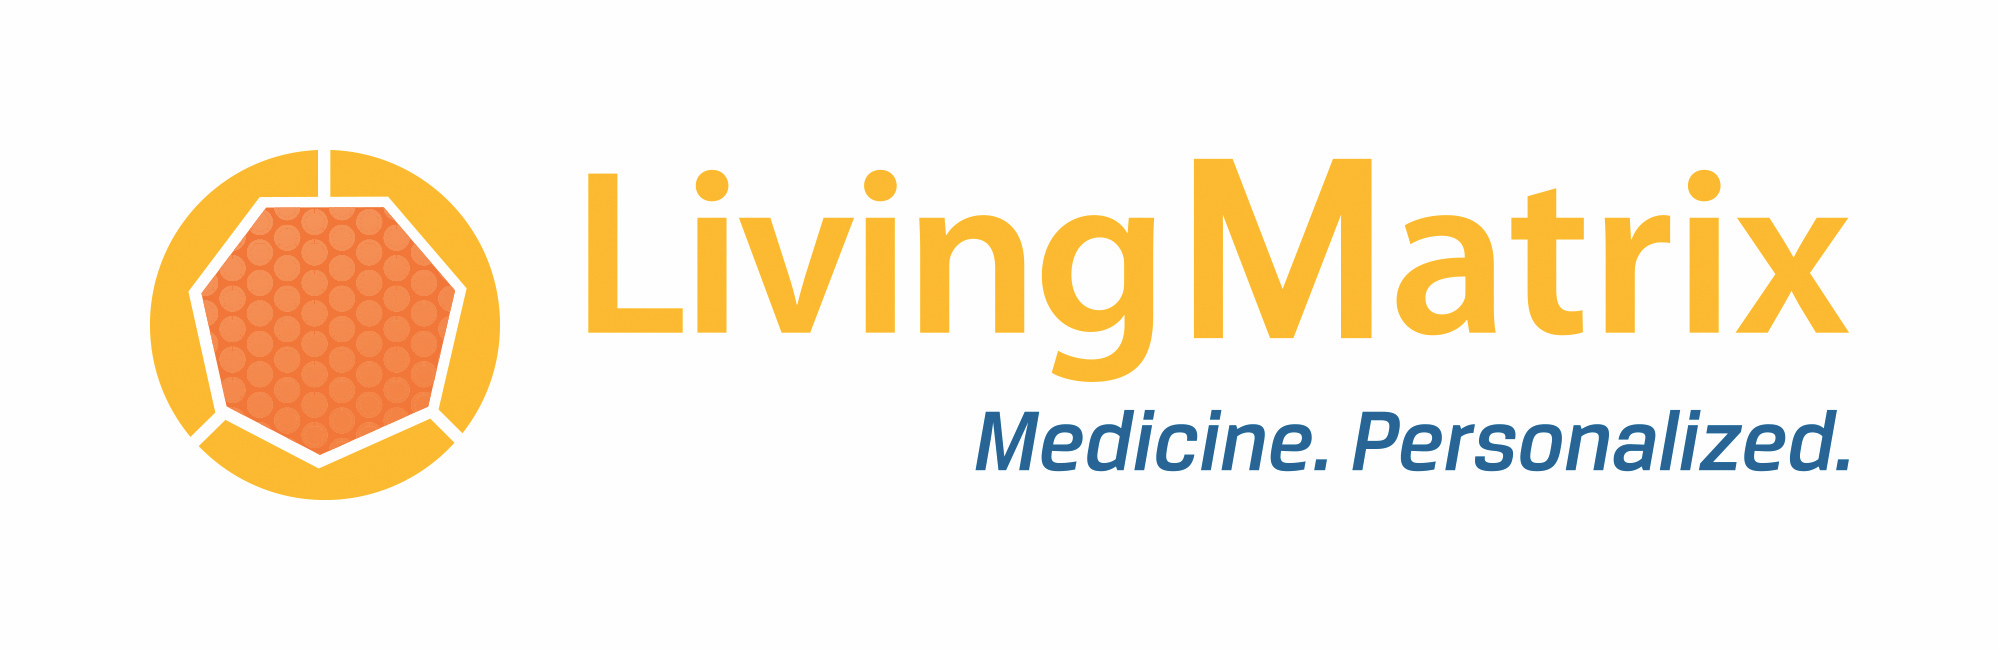 Living Matrix    I have extensive experience with this software platform if this is one you choose to use or would like to explore.